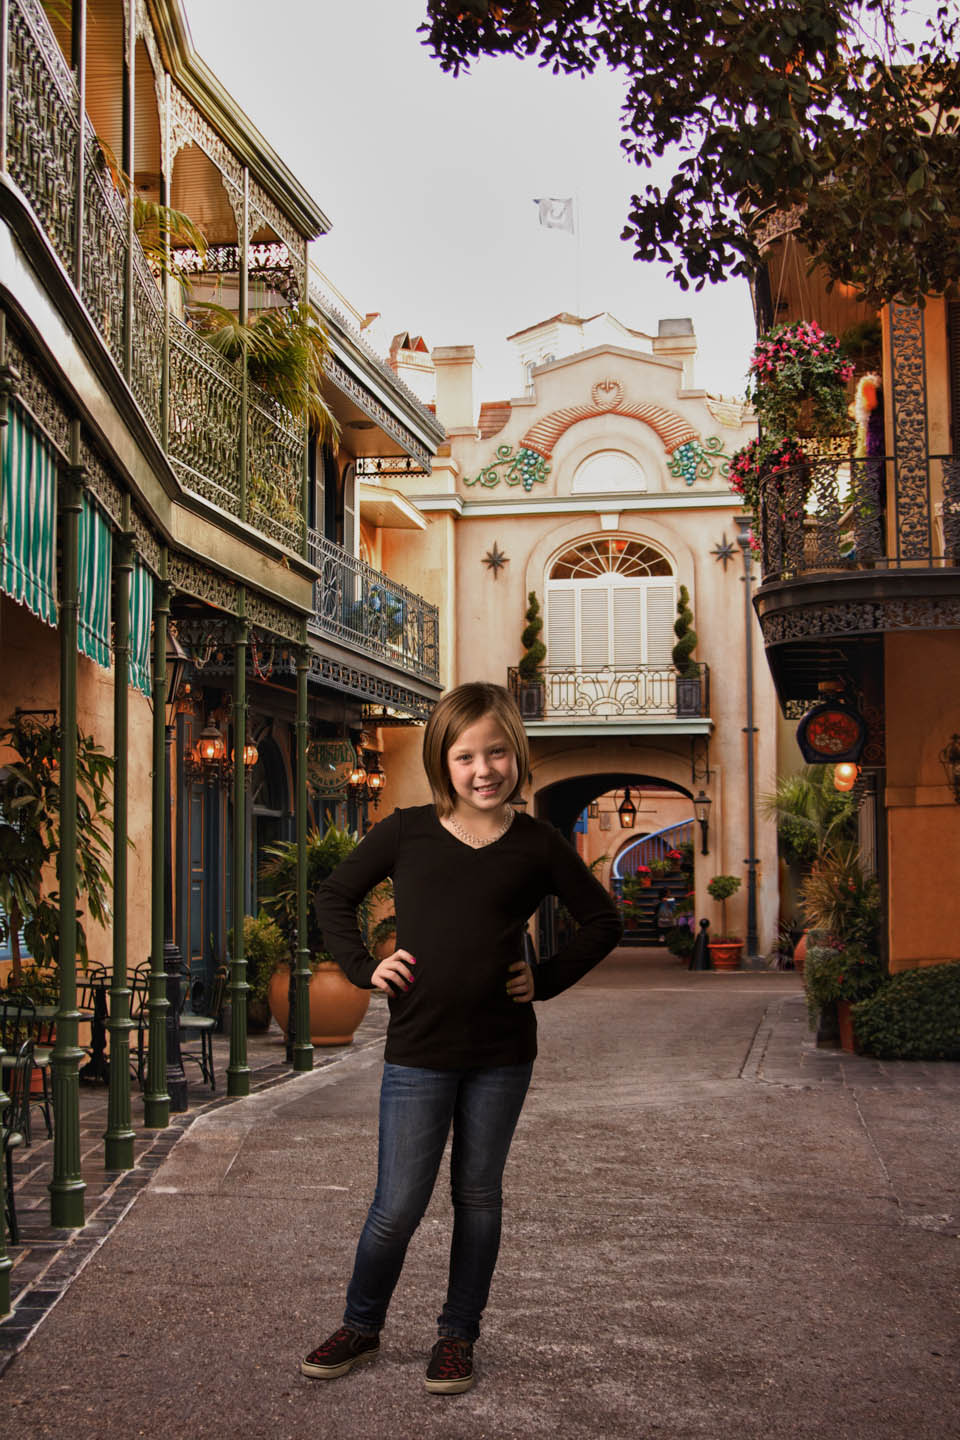 Photoshop Brin into Disneyland which was her favorite spot